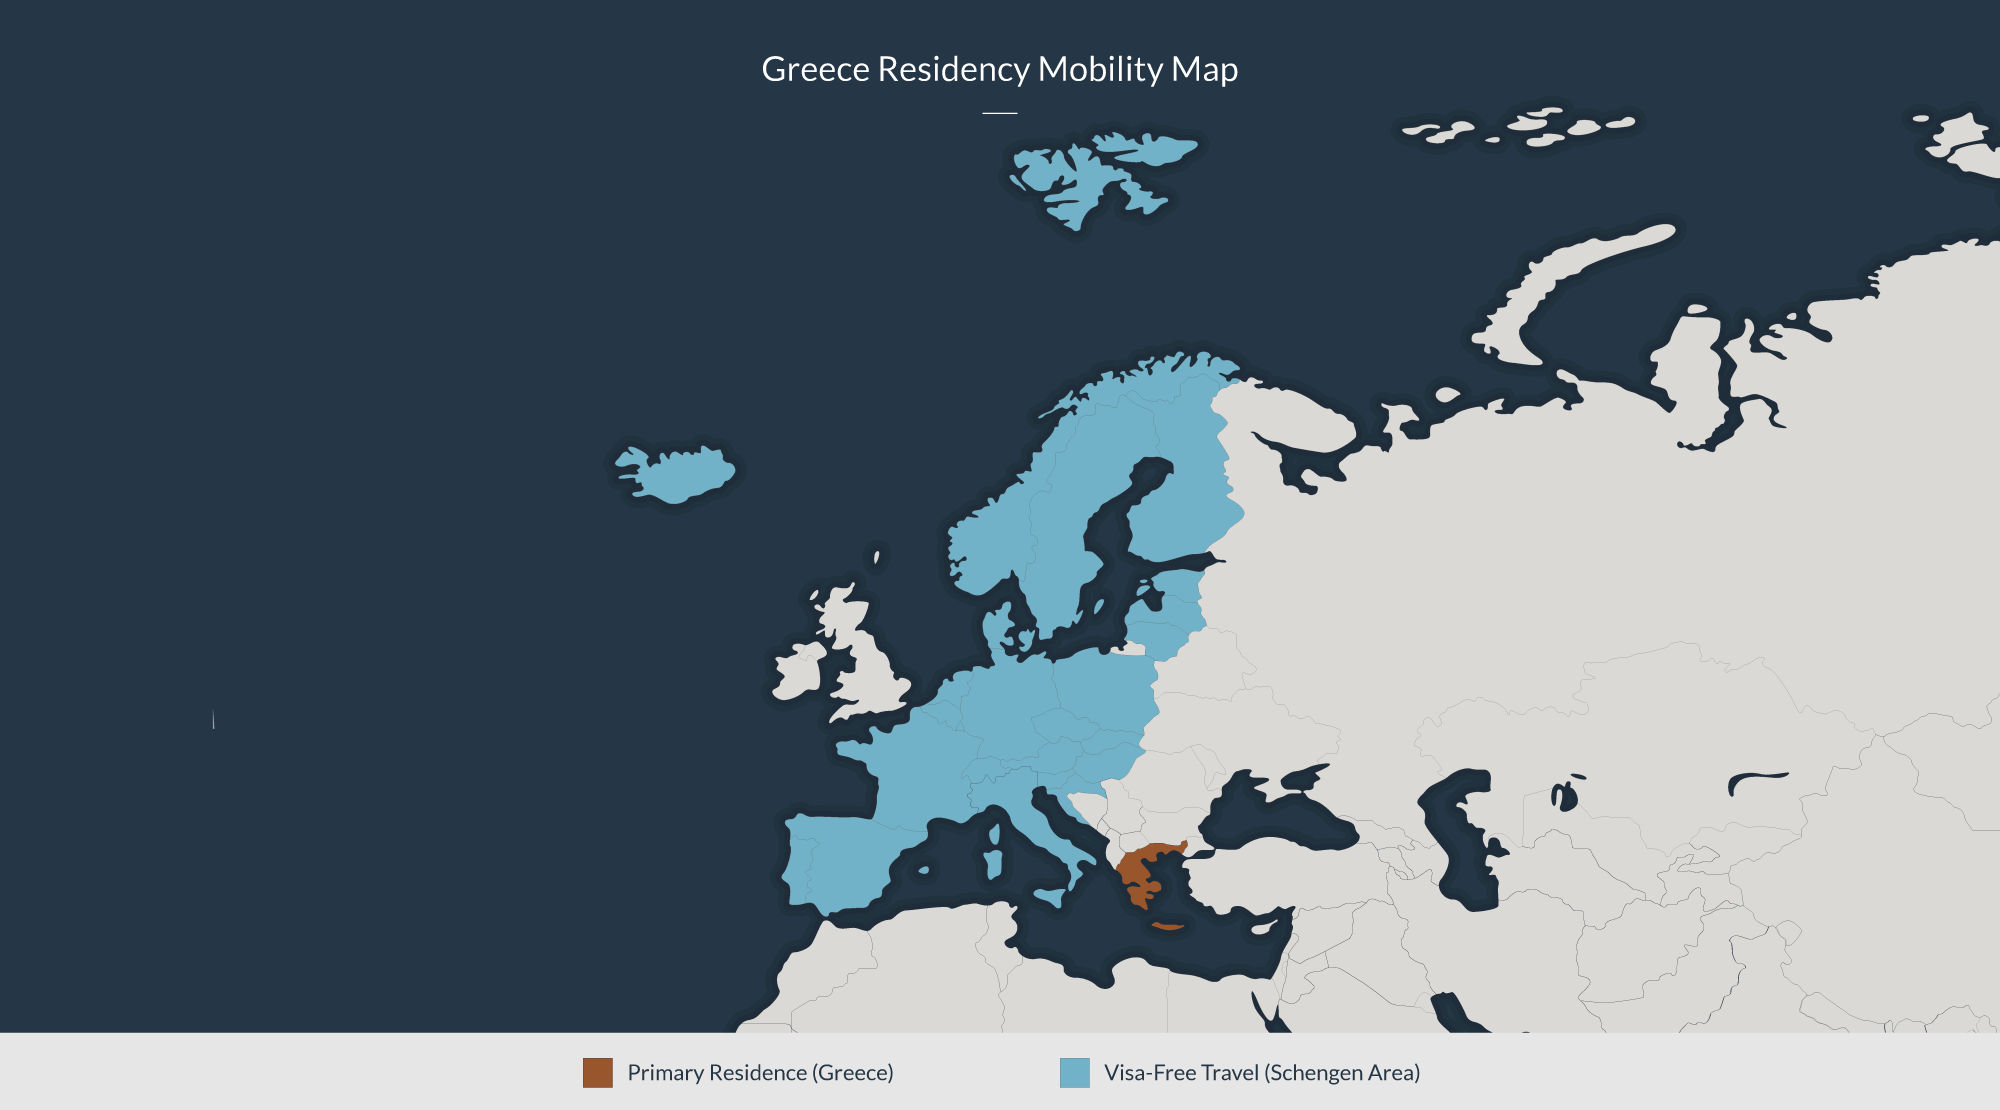 Greece residency mobility map: Primary residence in Greece, Visa-free travel across the Schengen area.